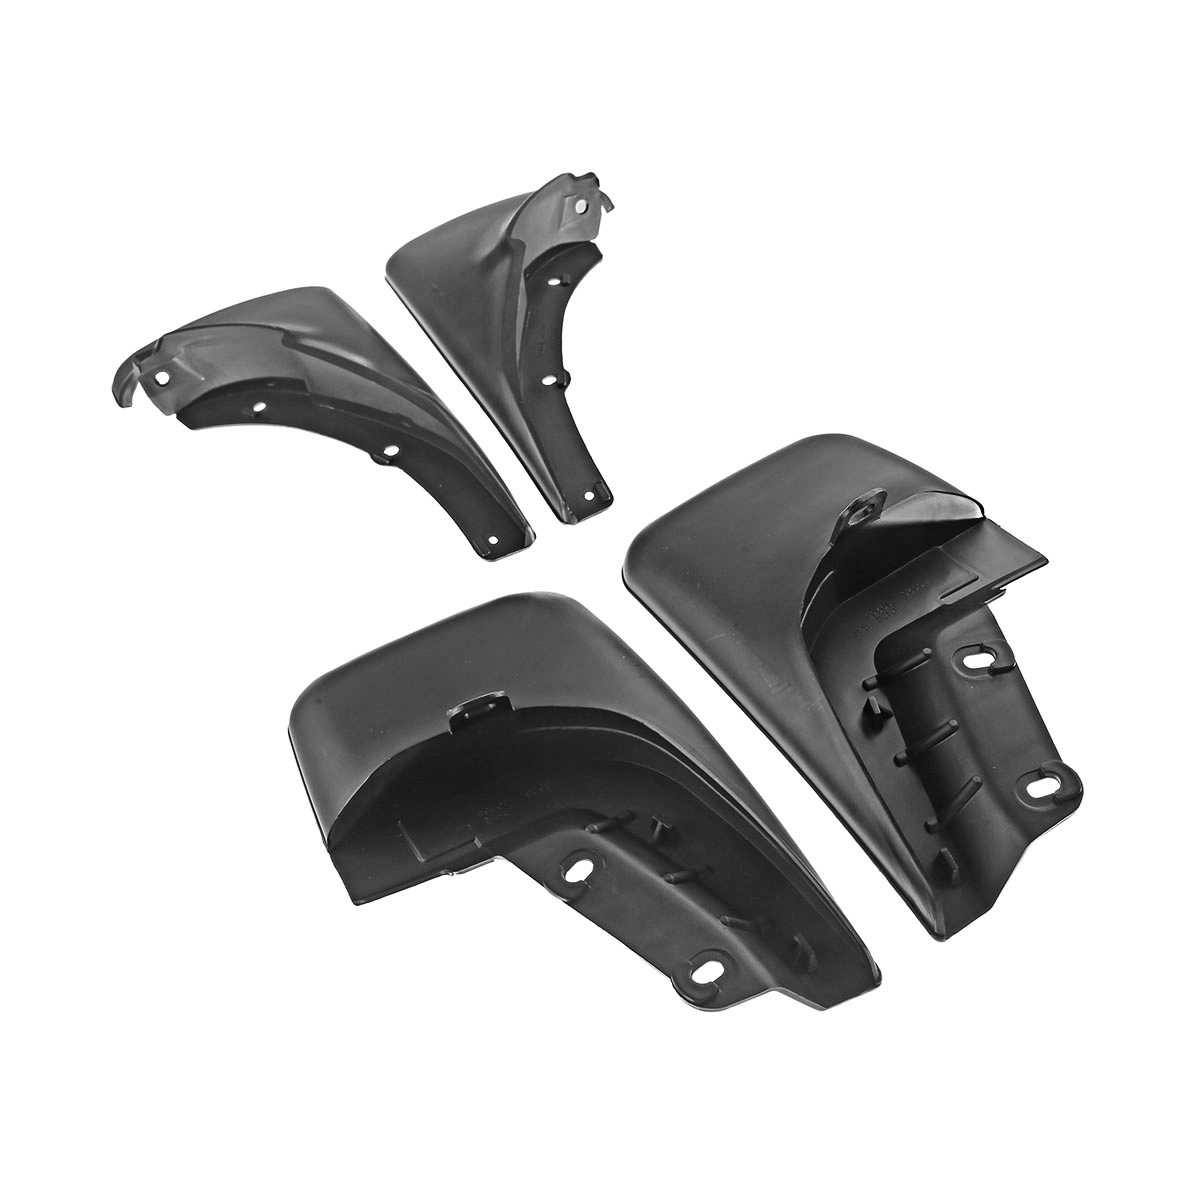 New Splash Guards Full Set Front Rear Fit For Toyota Corolla Mud Flaps 1988-1992